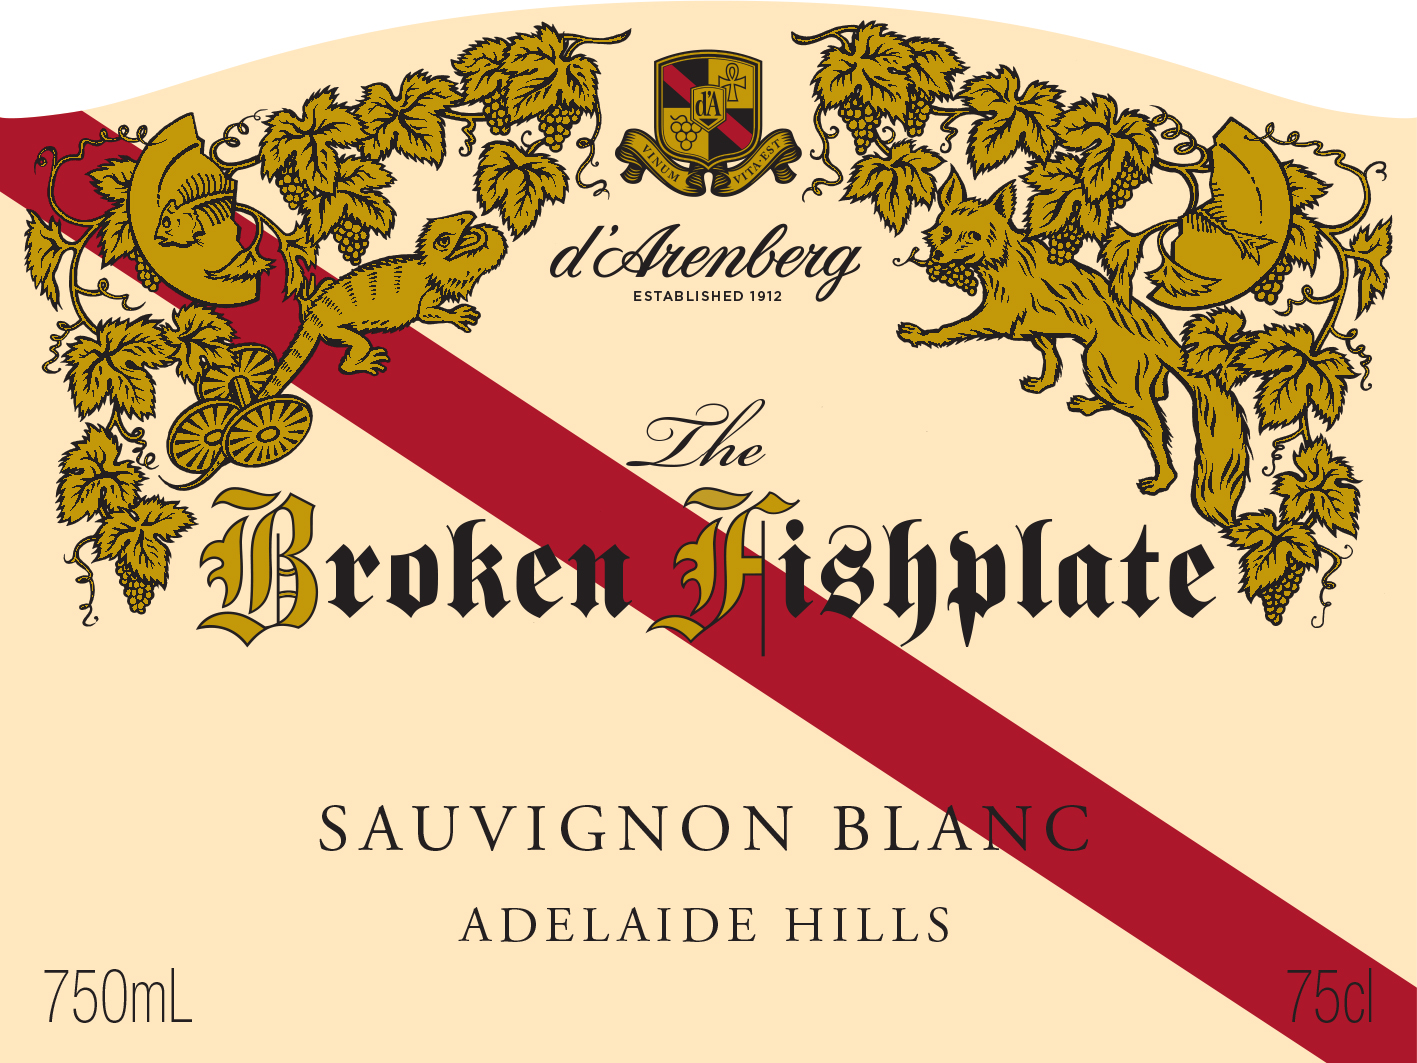 d'Arenberg The Broken Fishplate Sauvignon Blanc 2018 MAIN